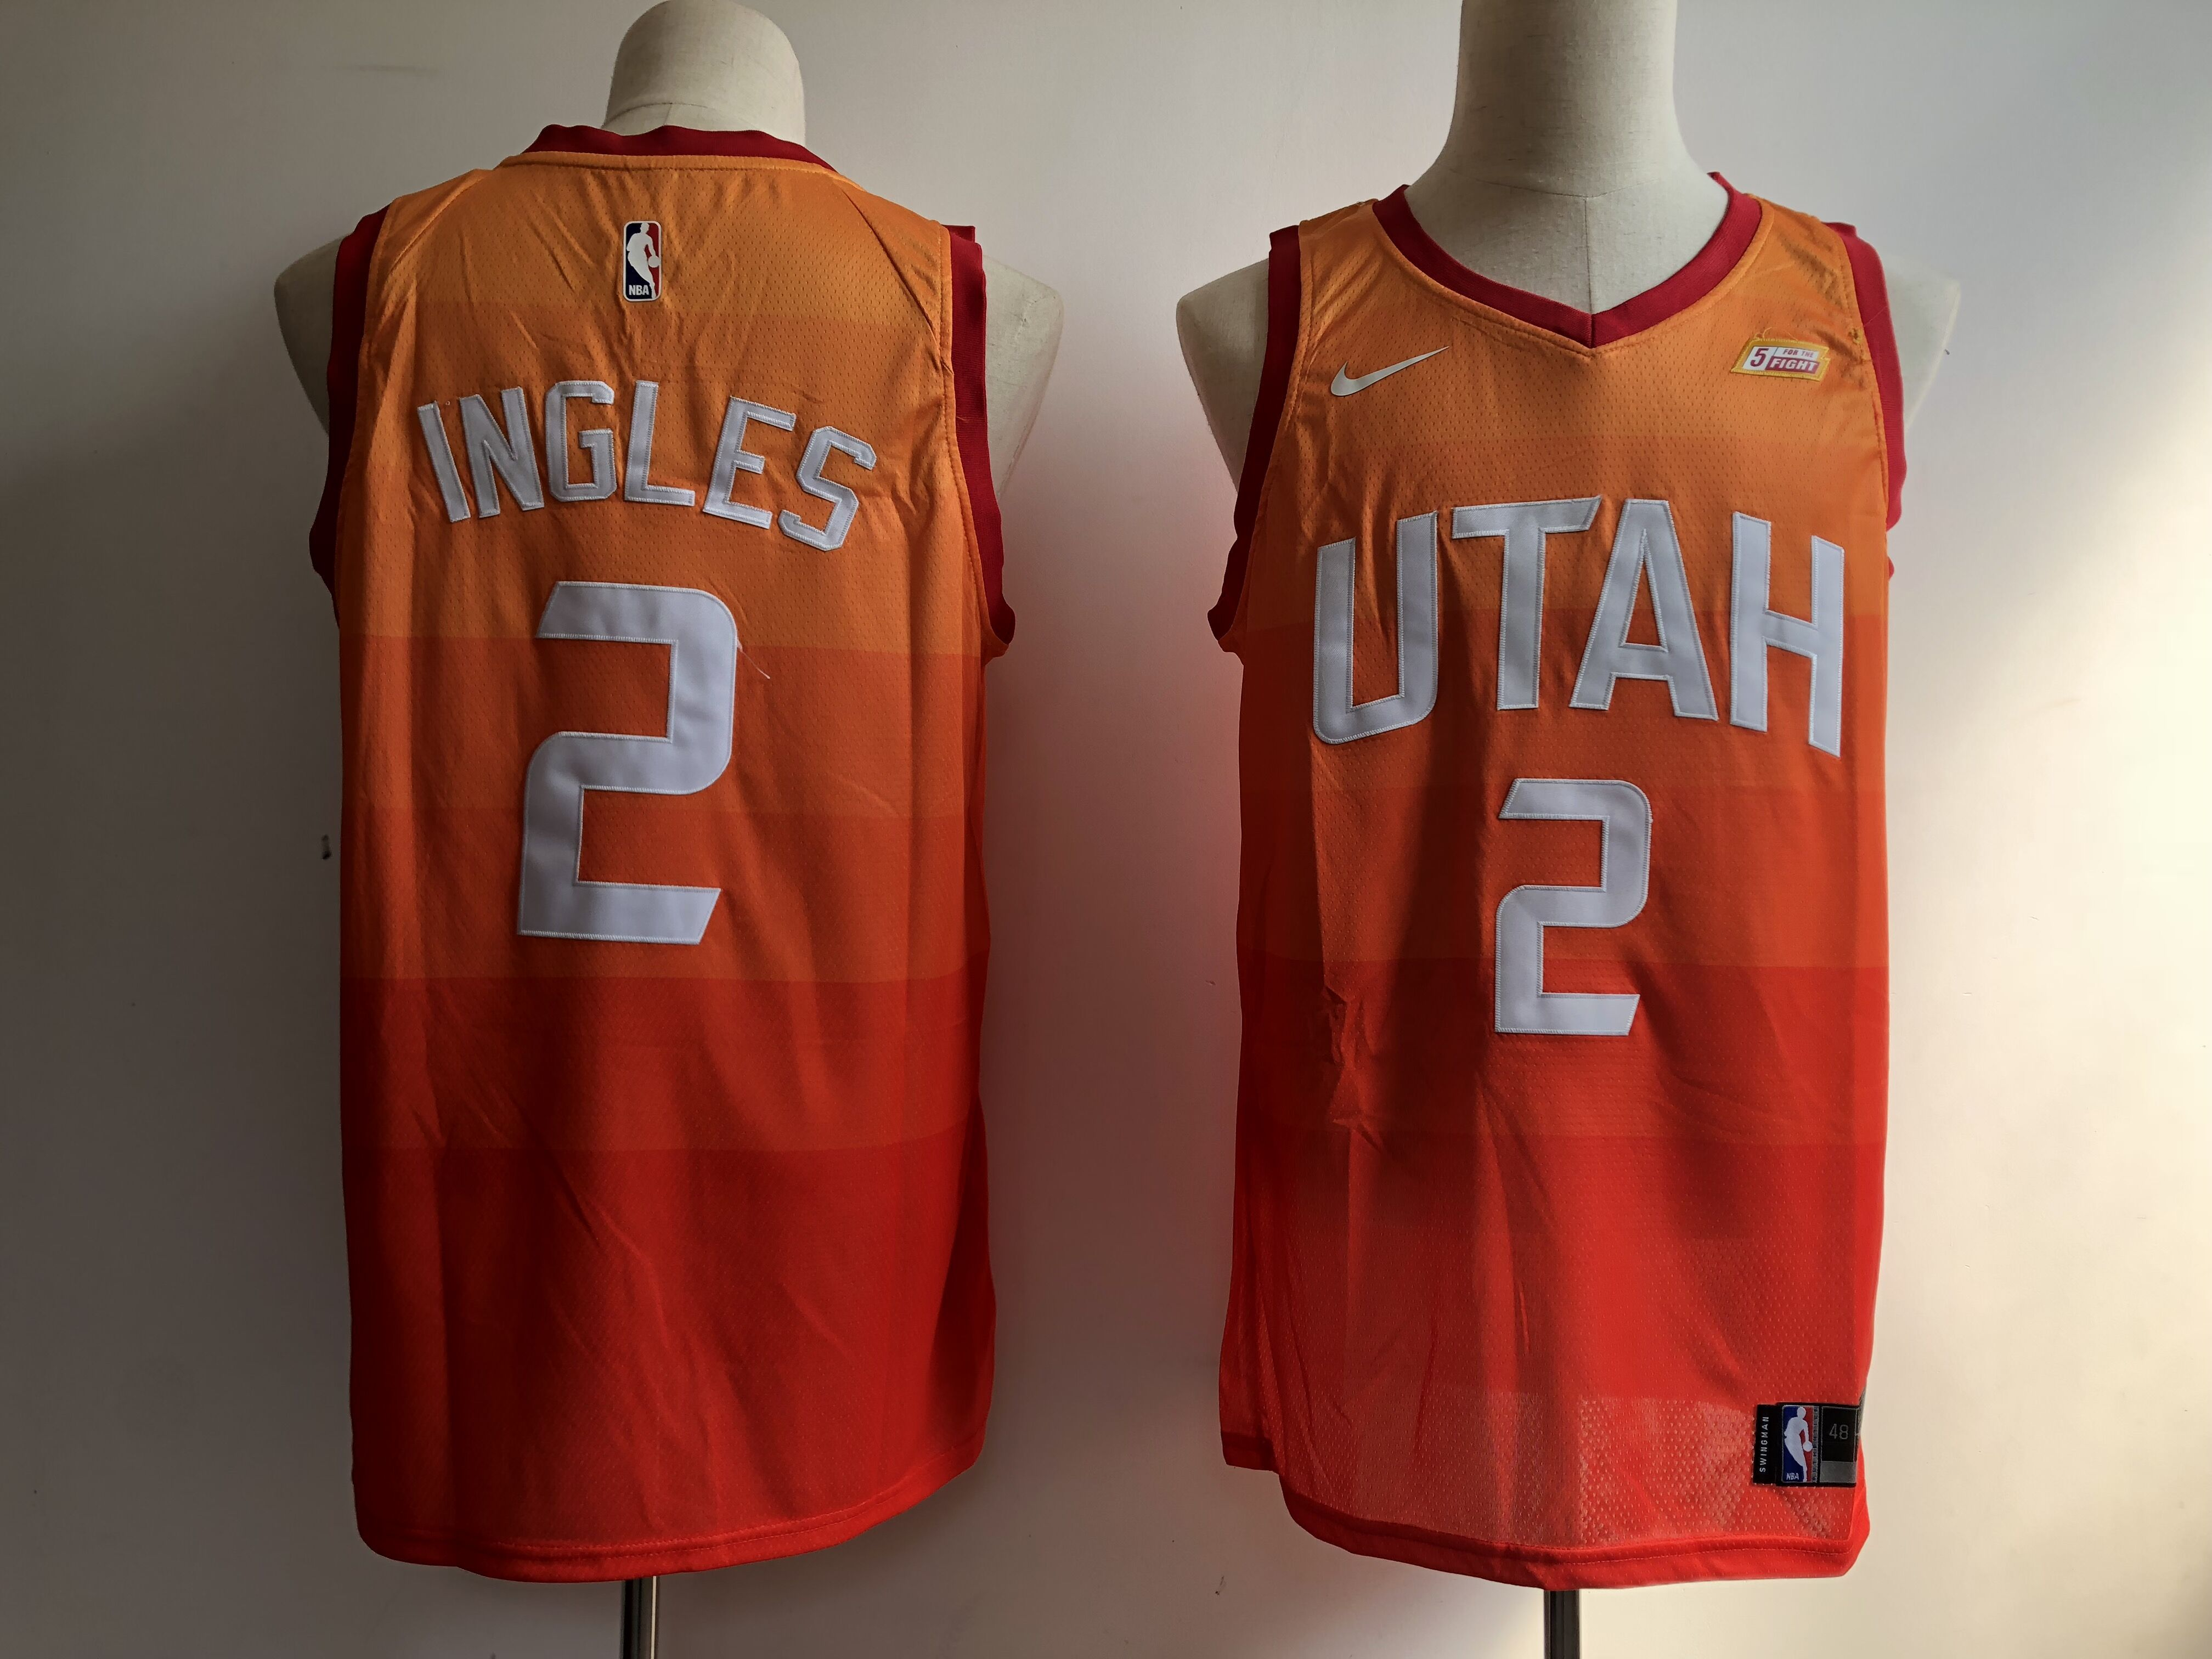 Men Utah Jazz 2 Ingles Orange City Edition Game Nike NBA Jerseys